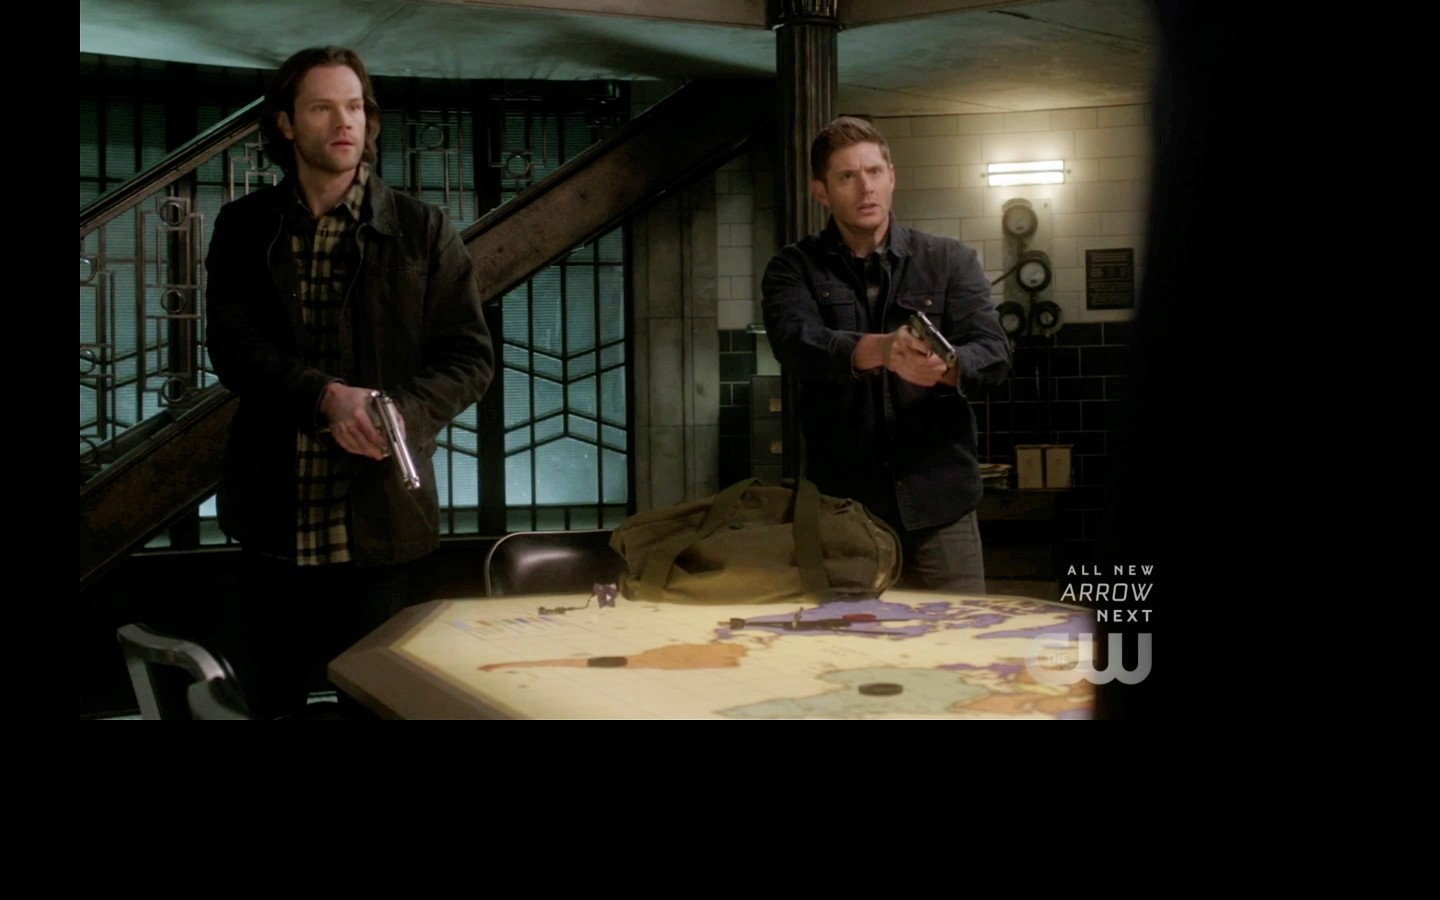 The Thing brings iconic 'Supernatural' | Movie TV Tech Geeks News